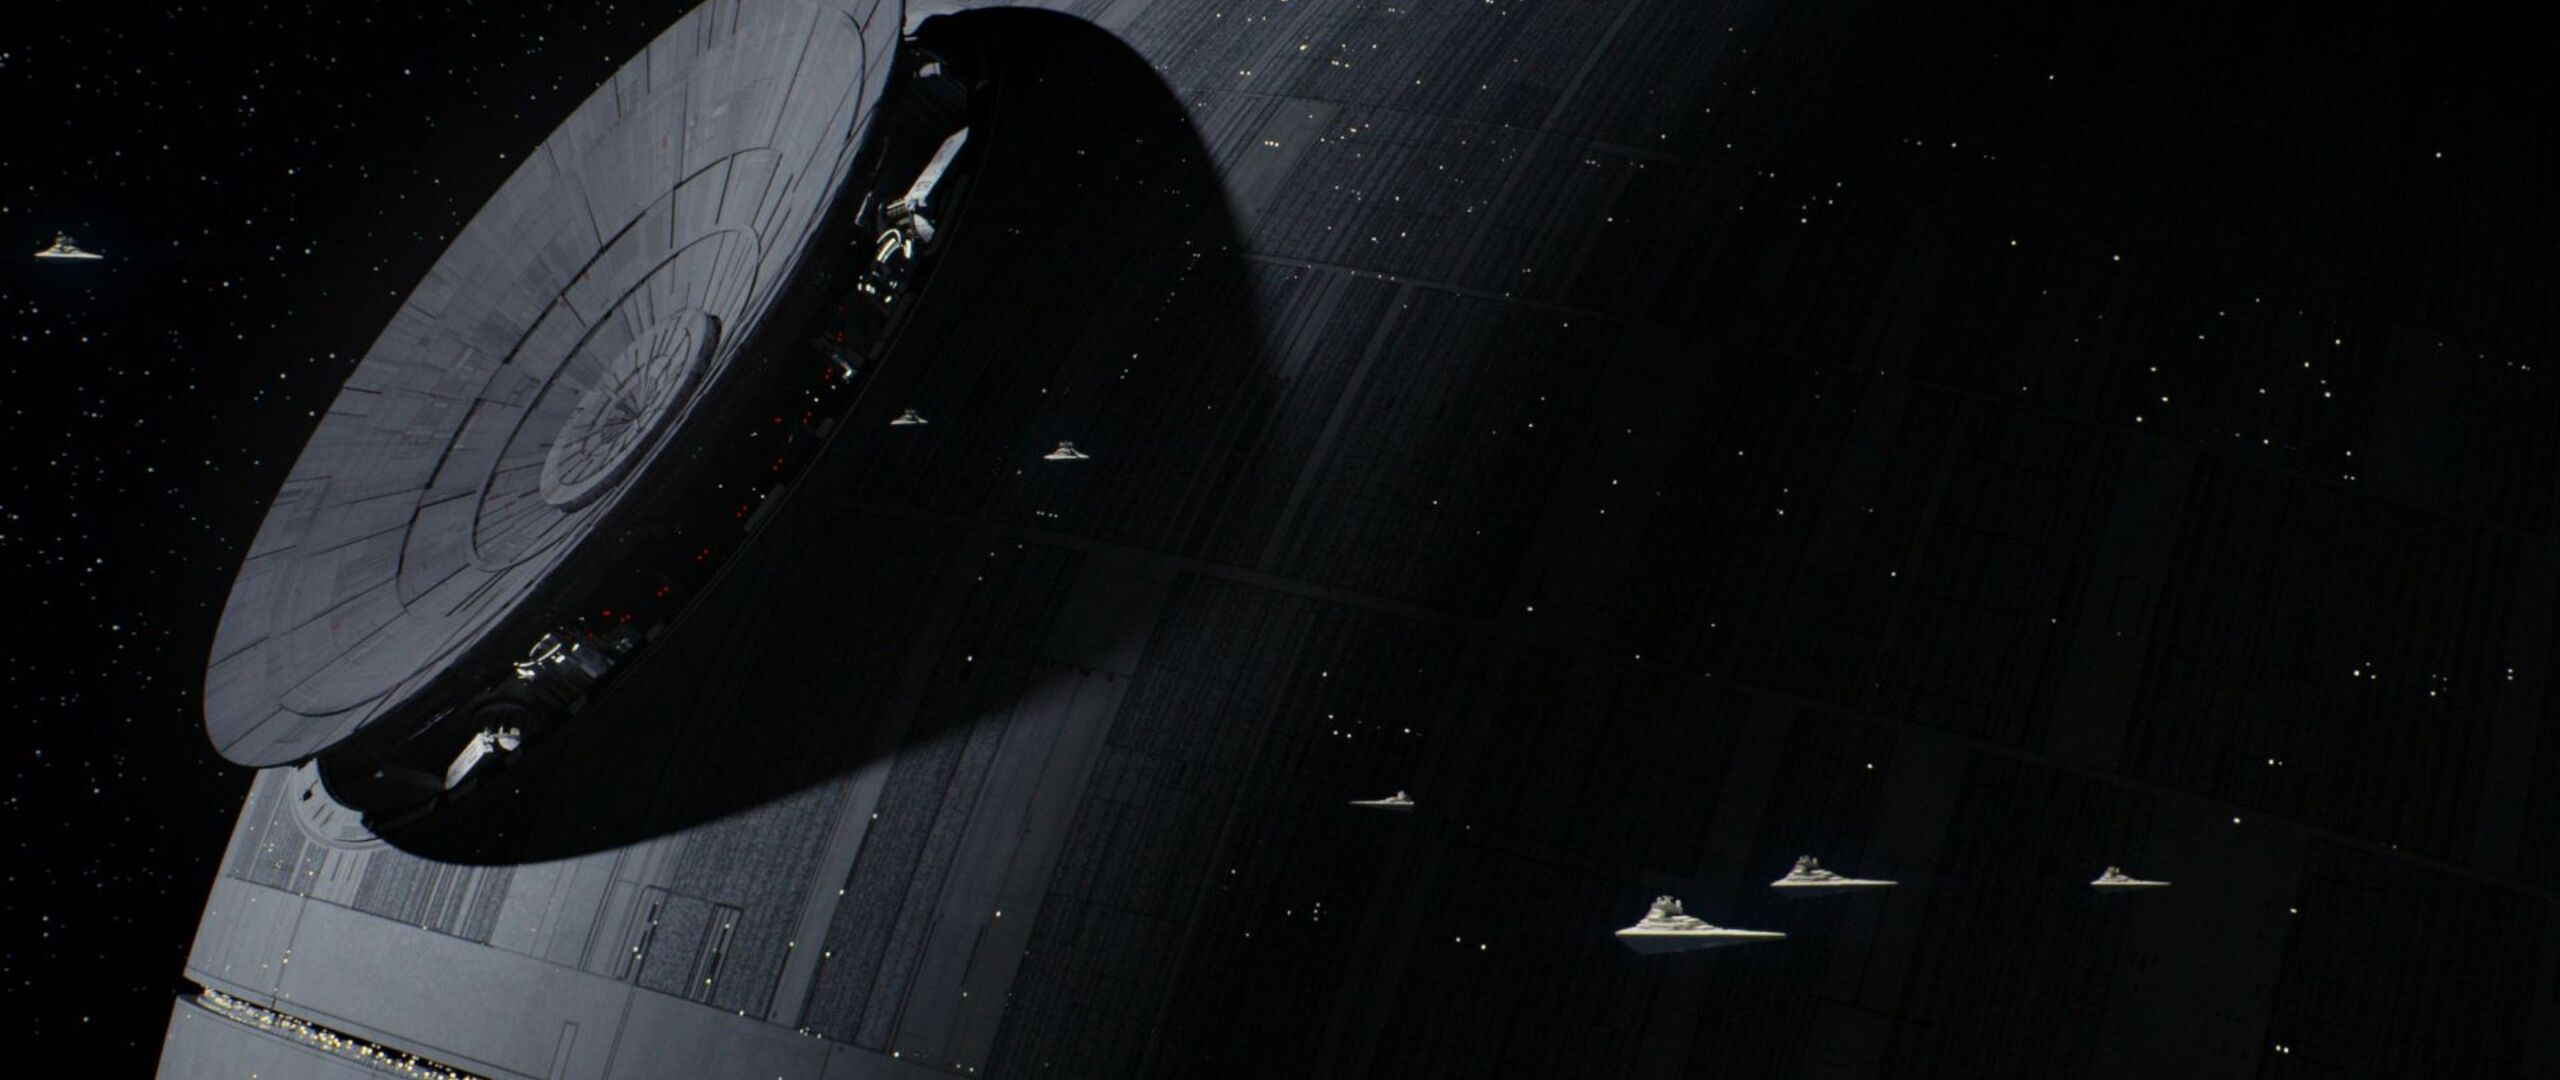 2560x1080 Rogue One Star Ship 2560x1080 Resolution Hd 4k Wallpapers Images Backgrounds Photos And Pictures